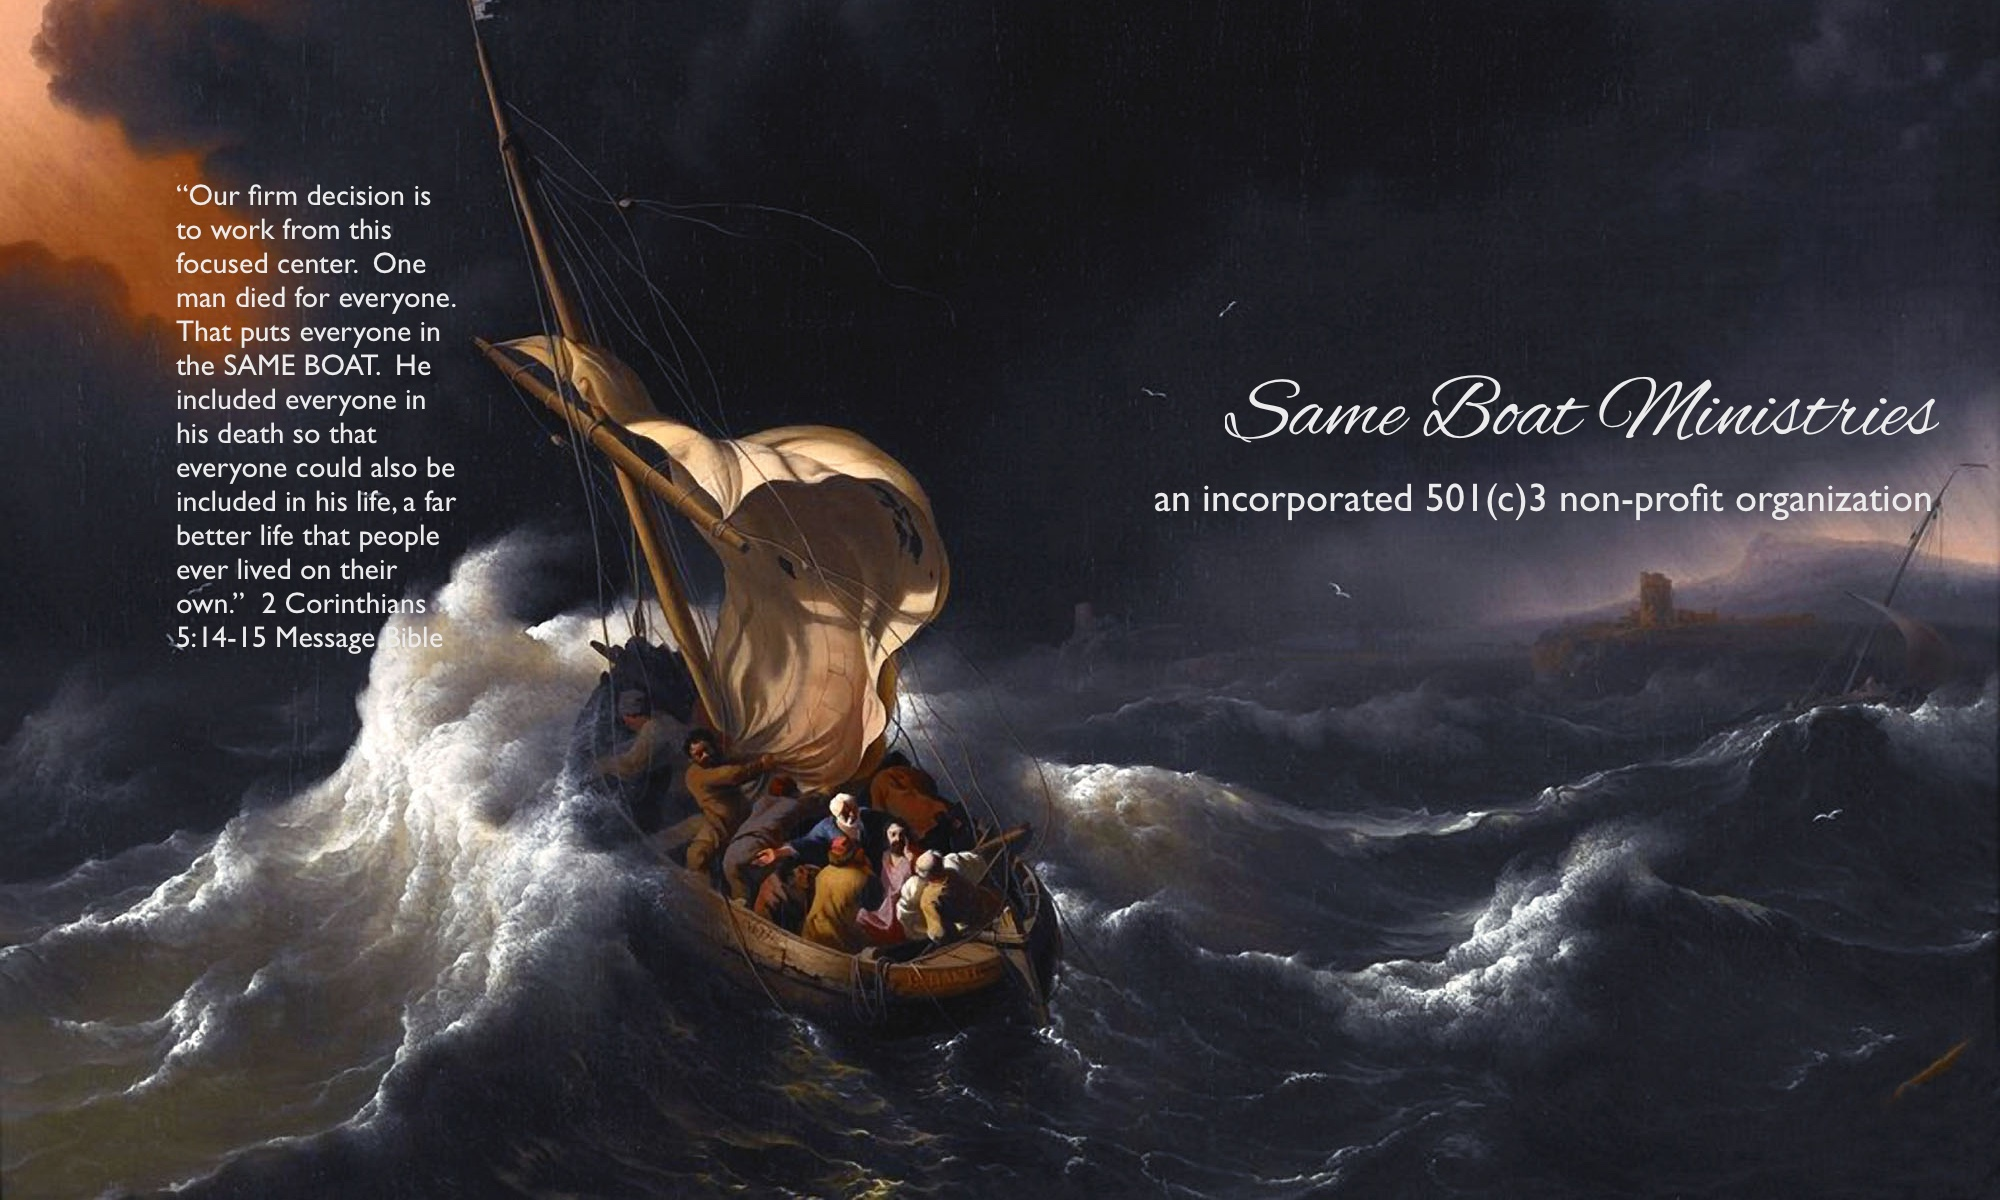 Same Boat Ministries